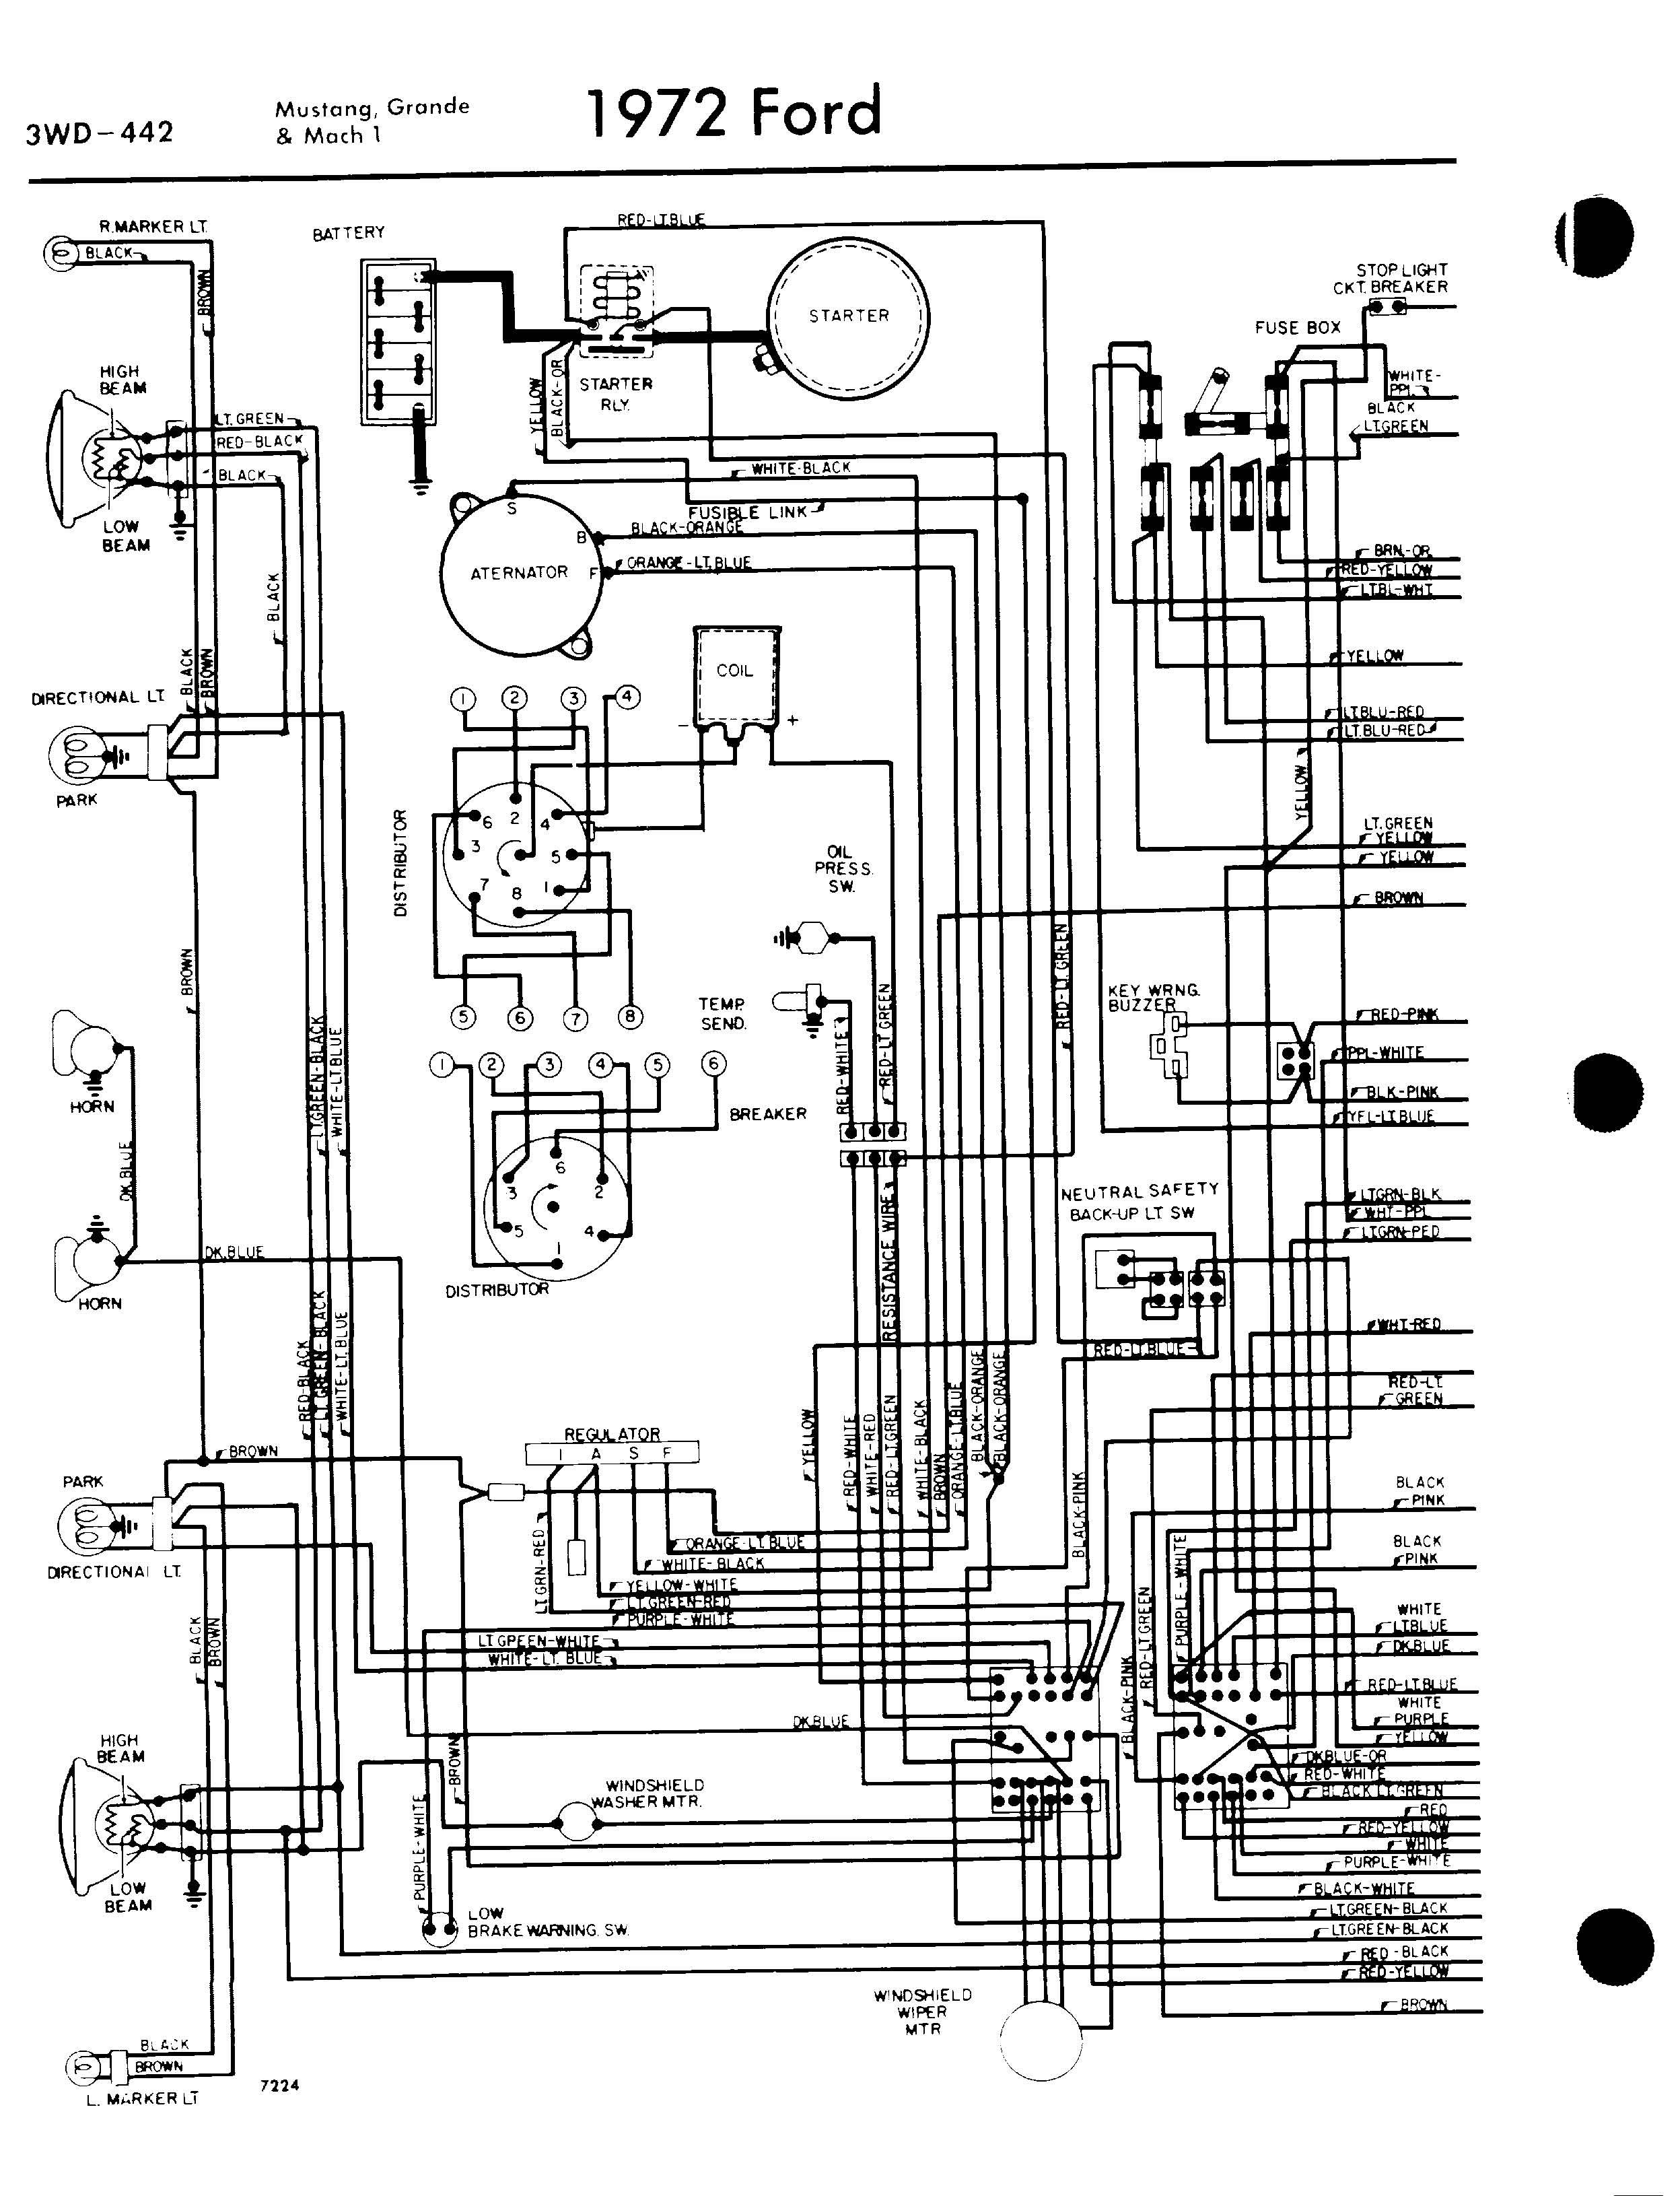 medium resolution of 1969 mercury wire diagrams wiring diagram blog1969 mercury cyclone wiring diagram wiring diagram 1968 mercury cyclone